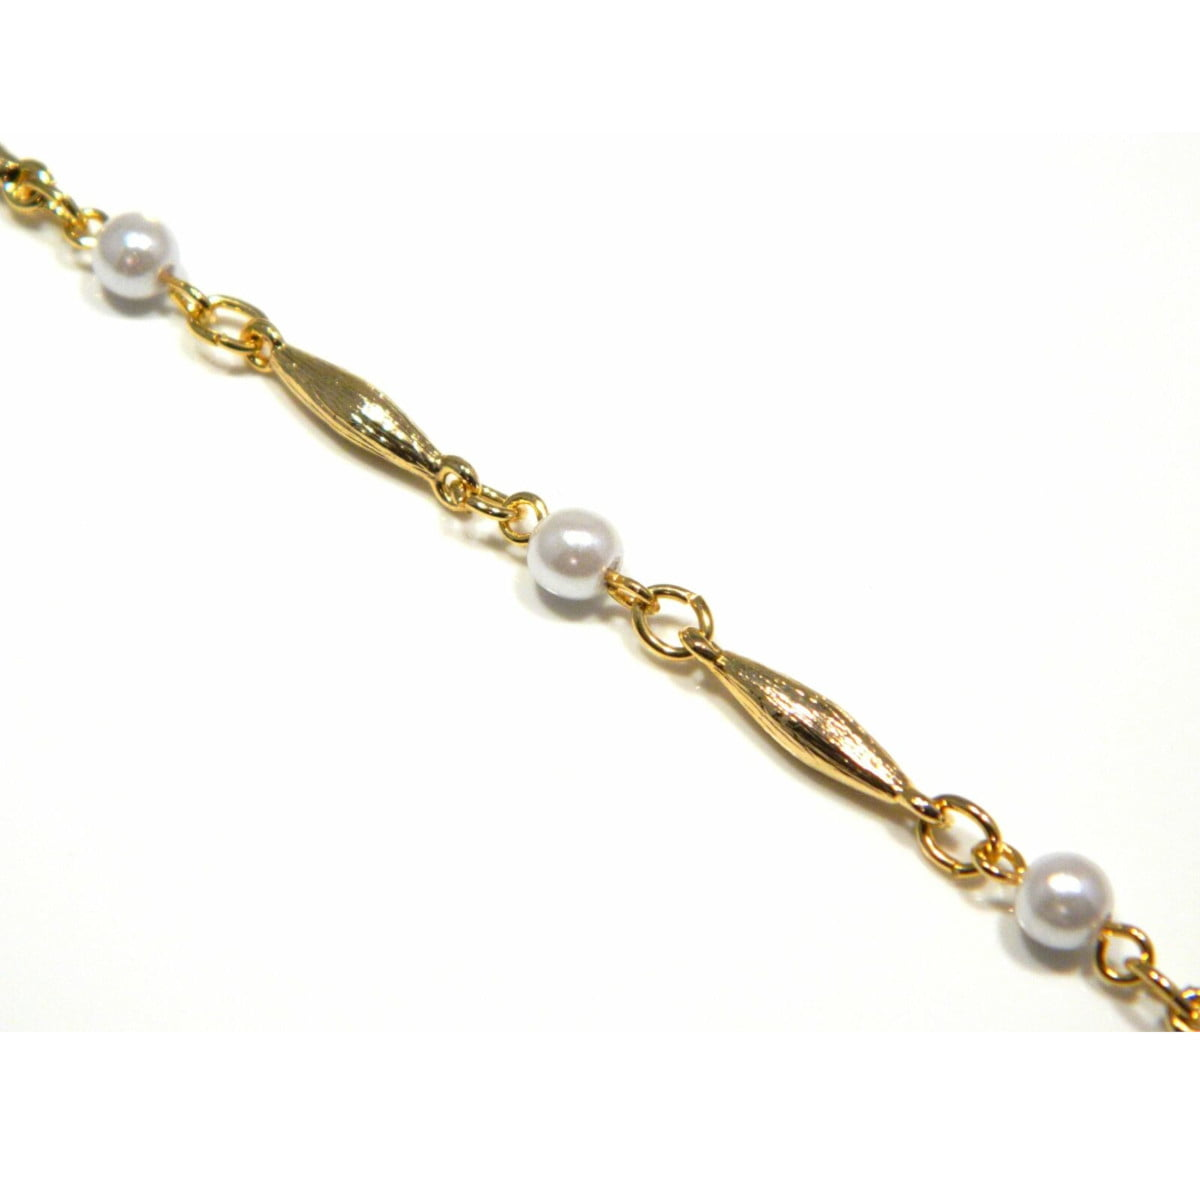 18 inches gold plated trace chain